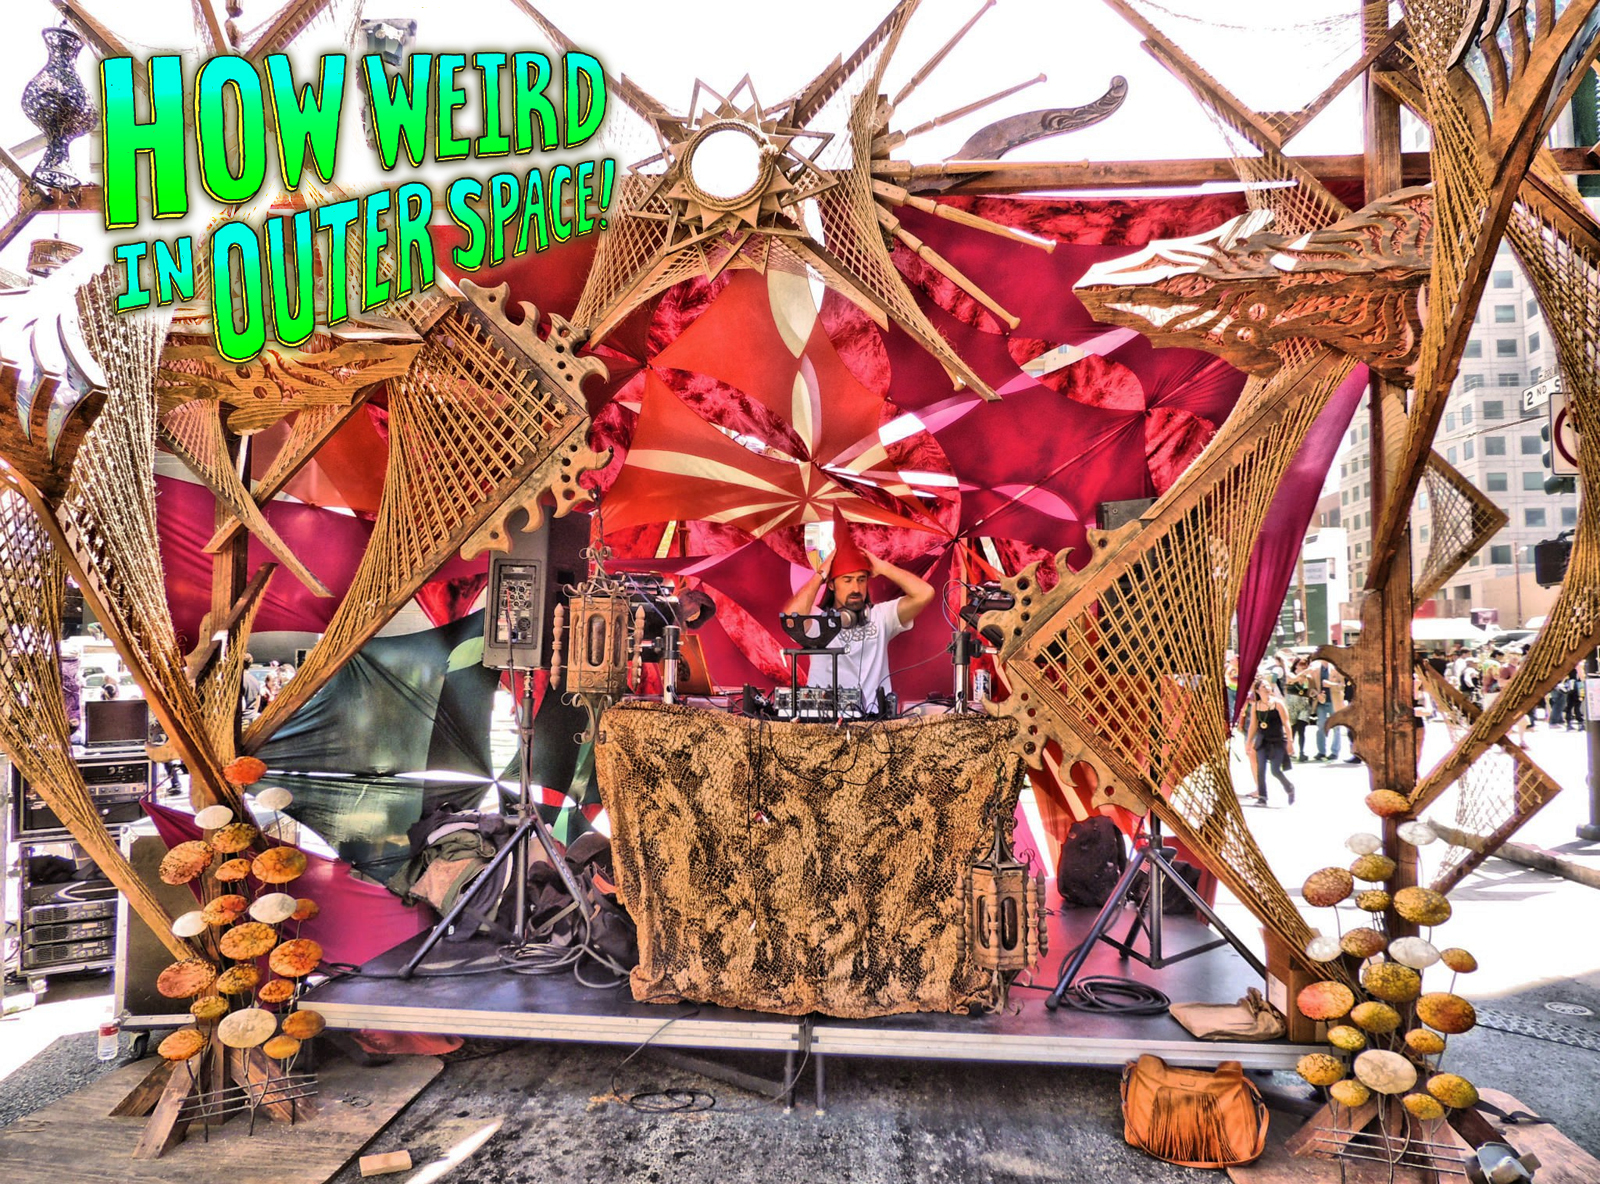 Symbiosis stage at How Weird 2013